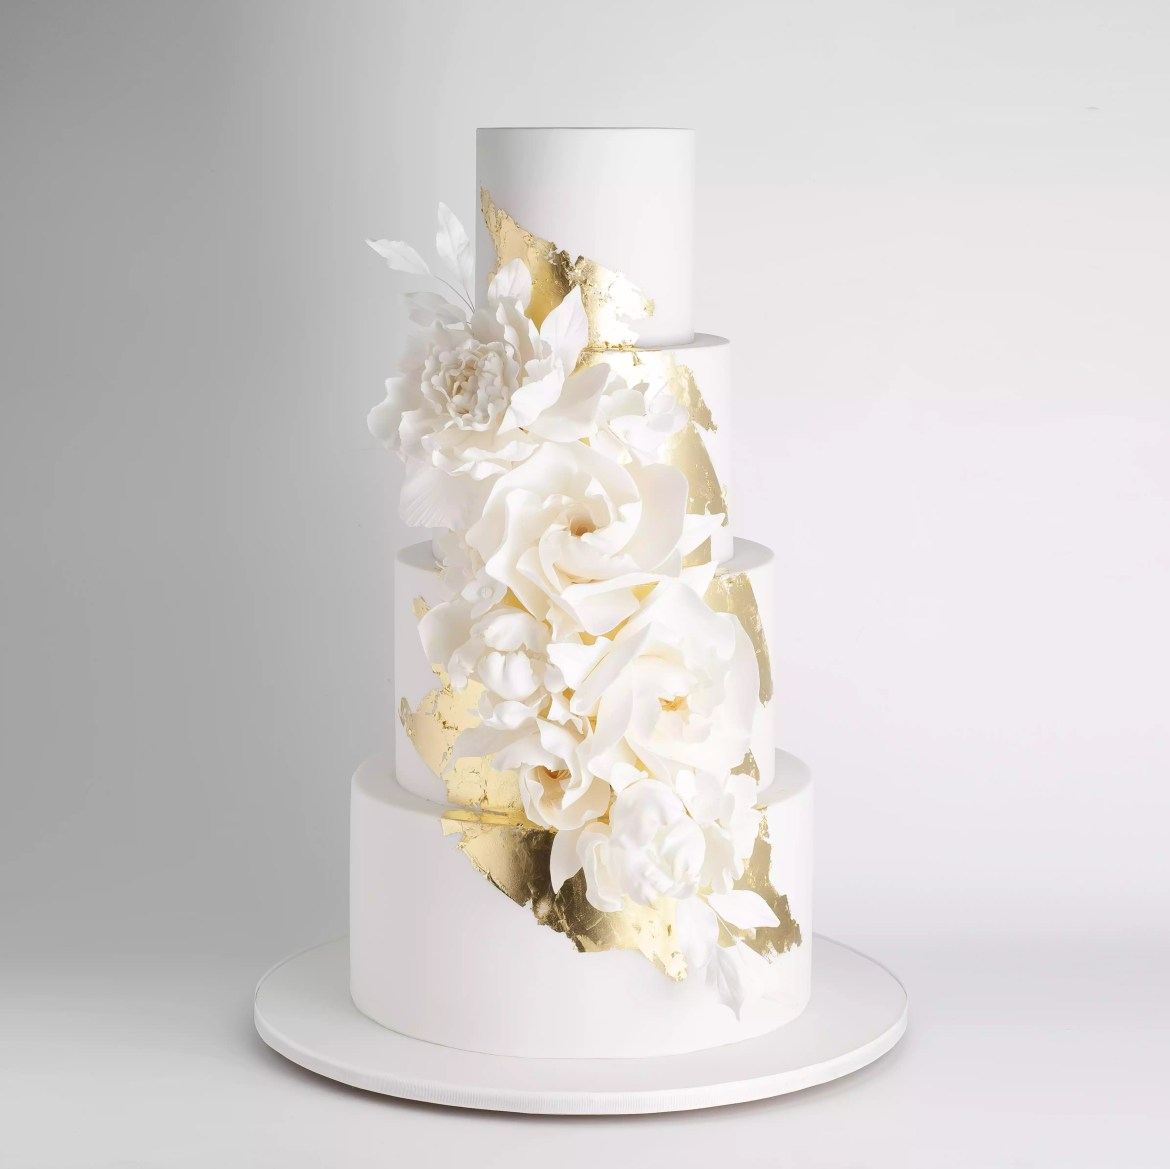 Gold accented floral cake